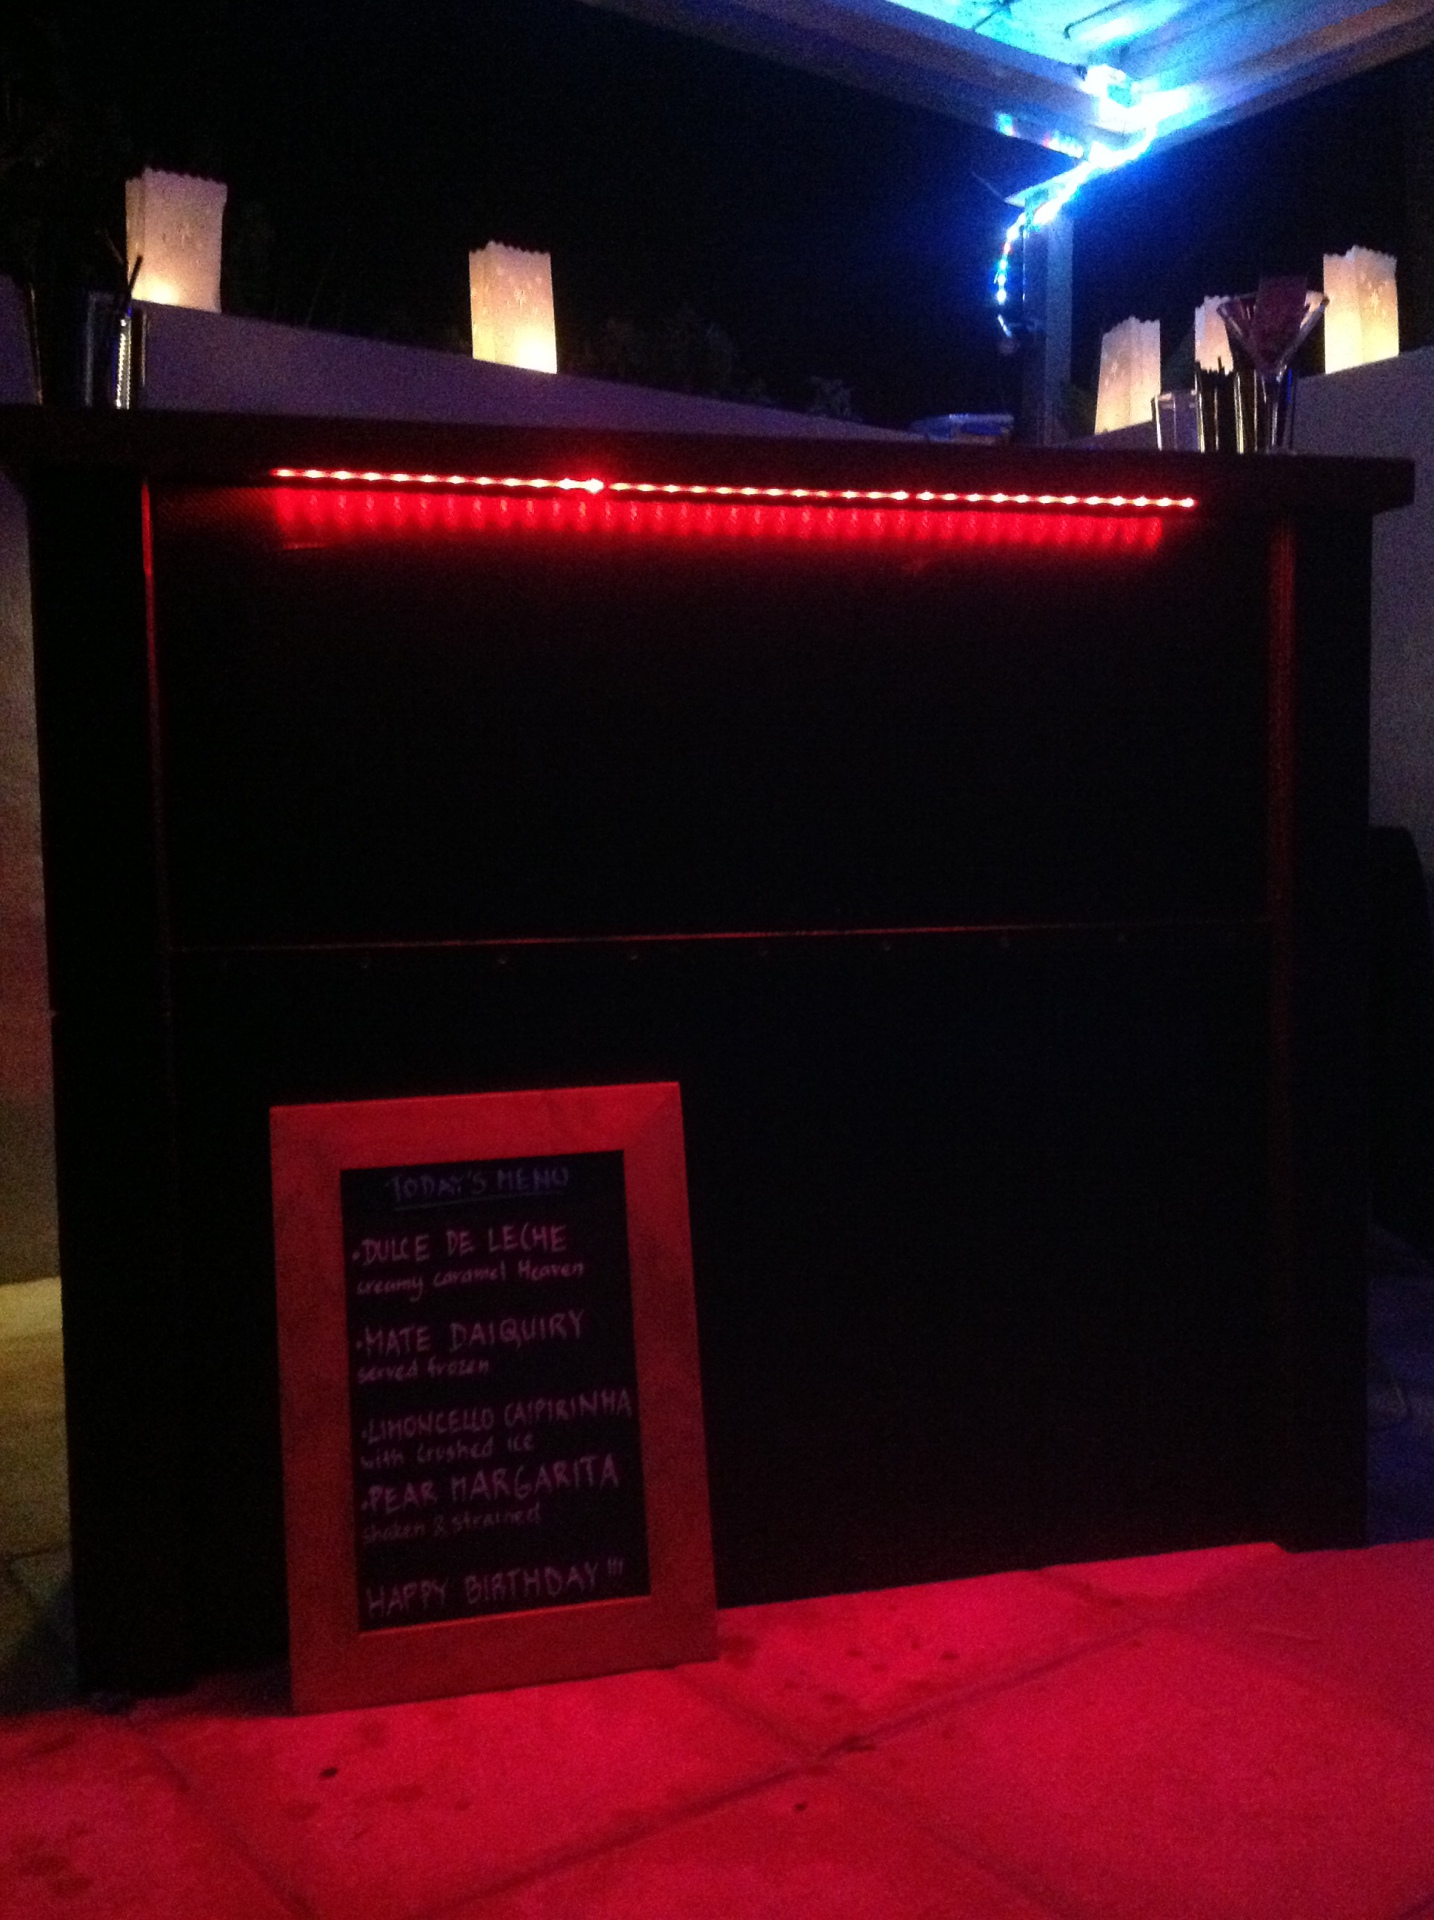 LED lighting on our Mobile Cocktail Bar